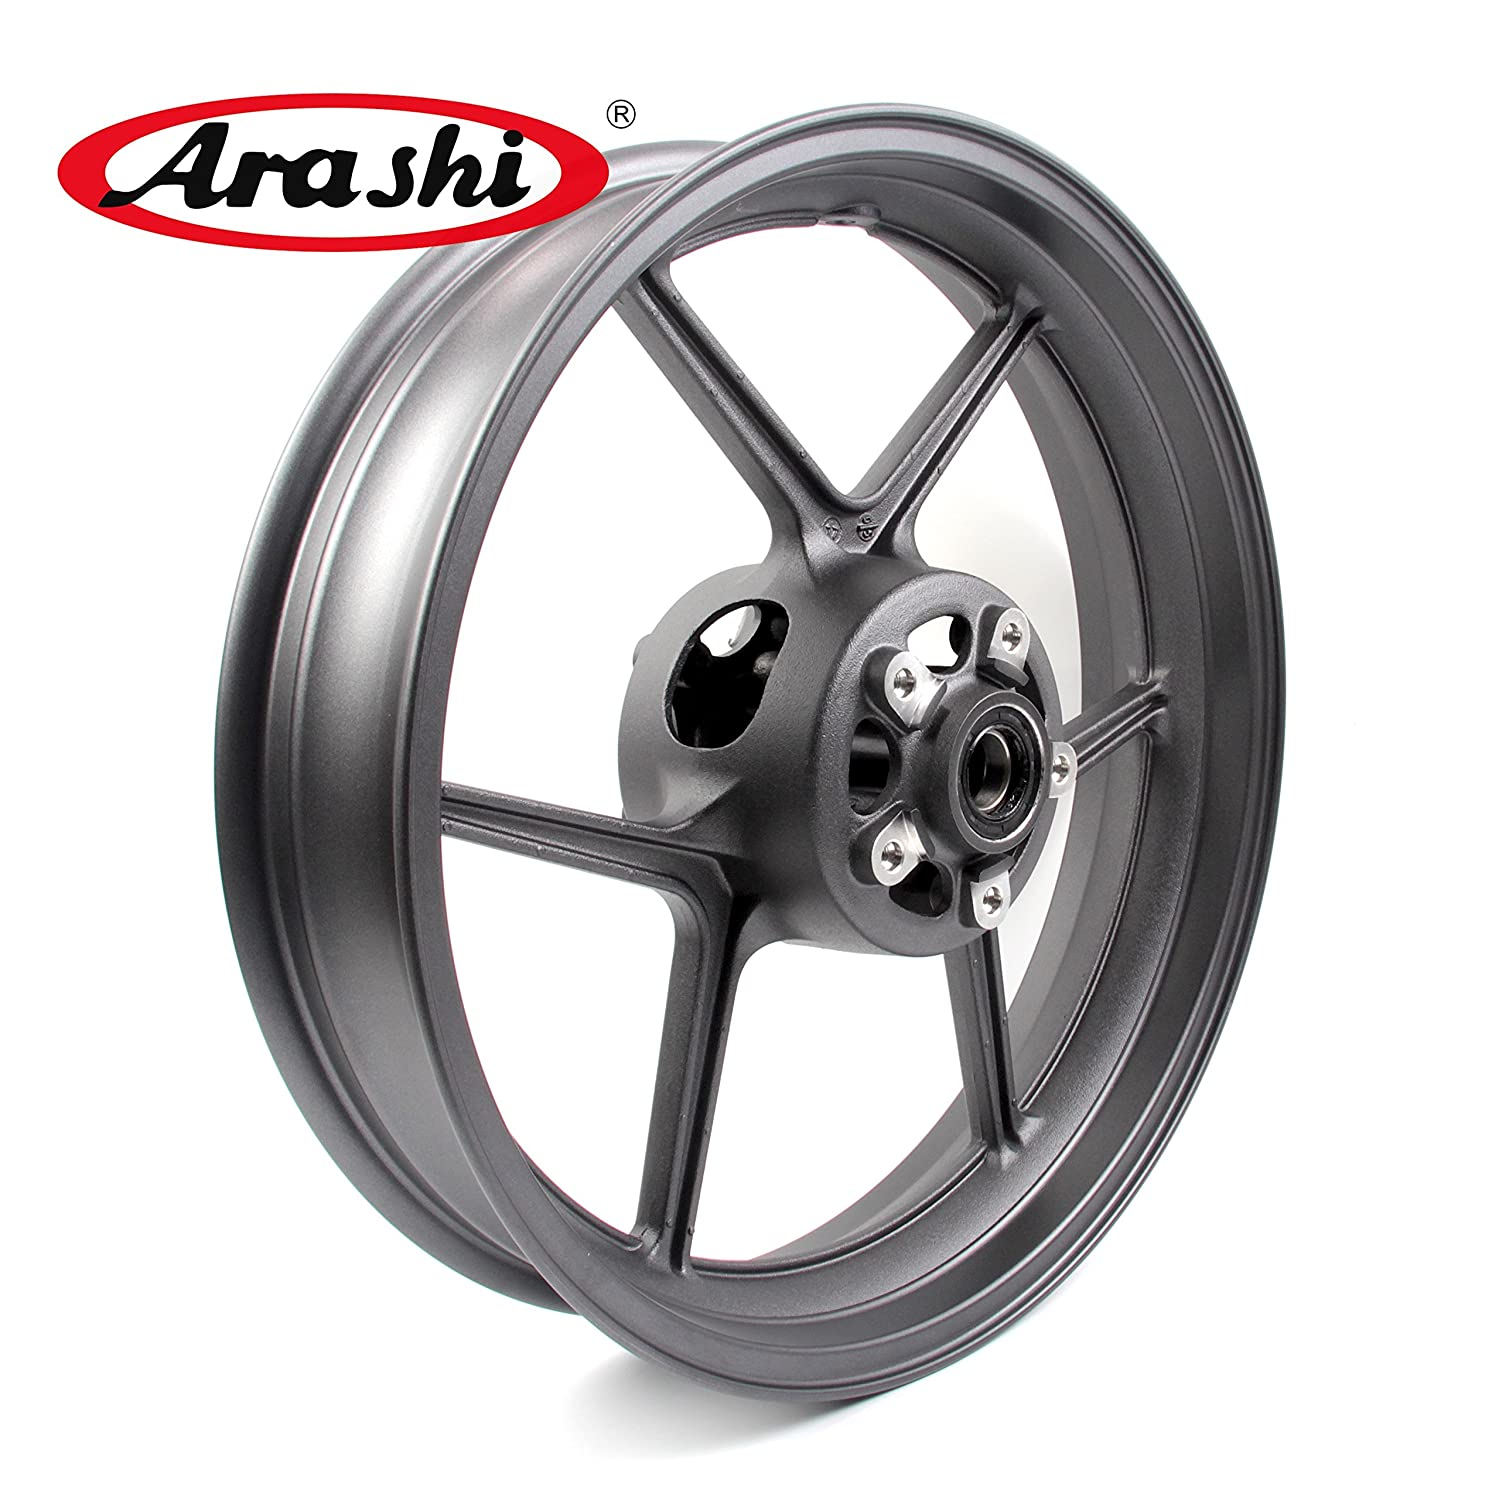 Amazon.com: Arashi Front Wheel Rim for KAWASAKI NINJA ZX10R ...